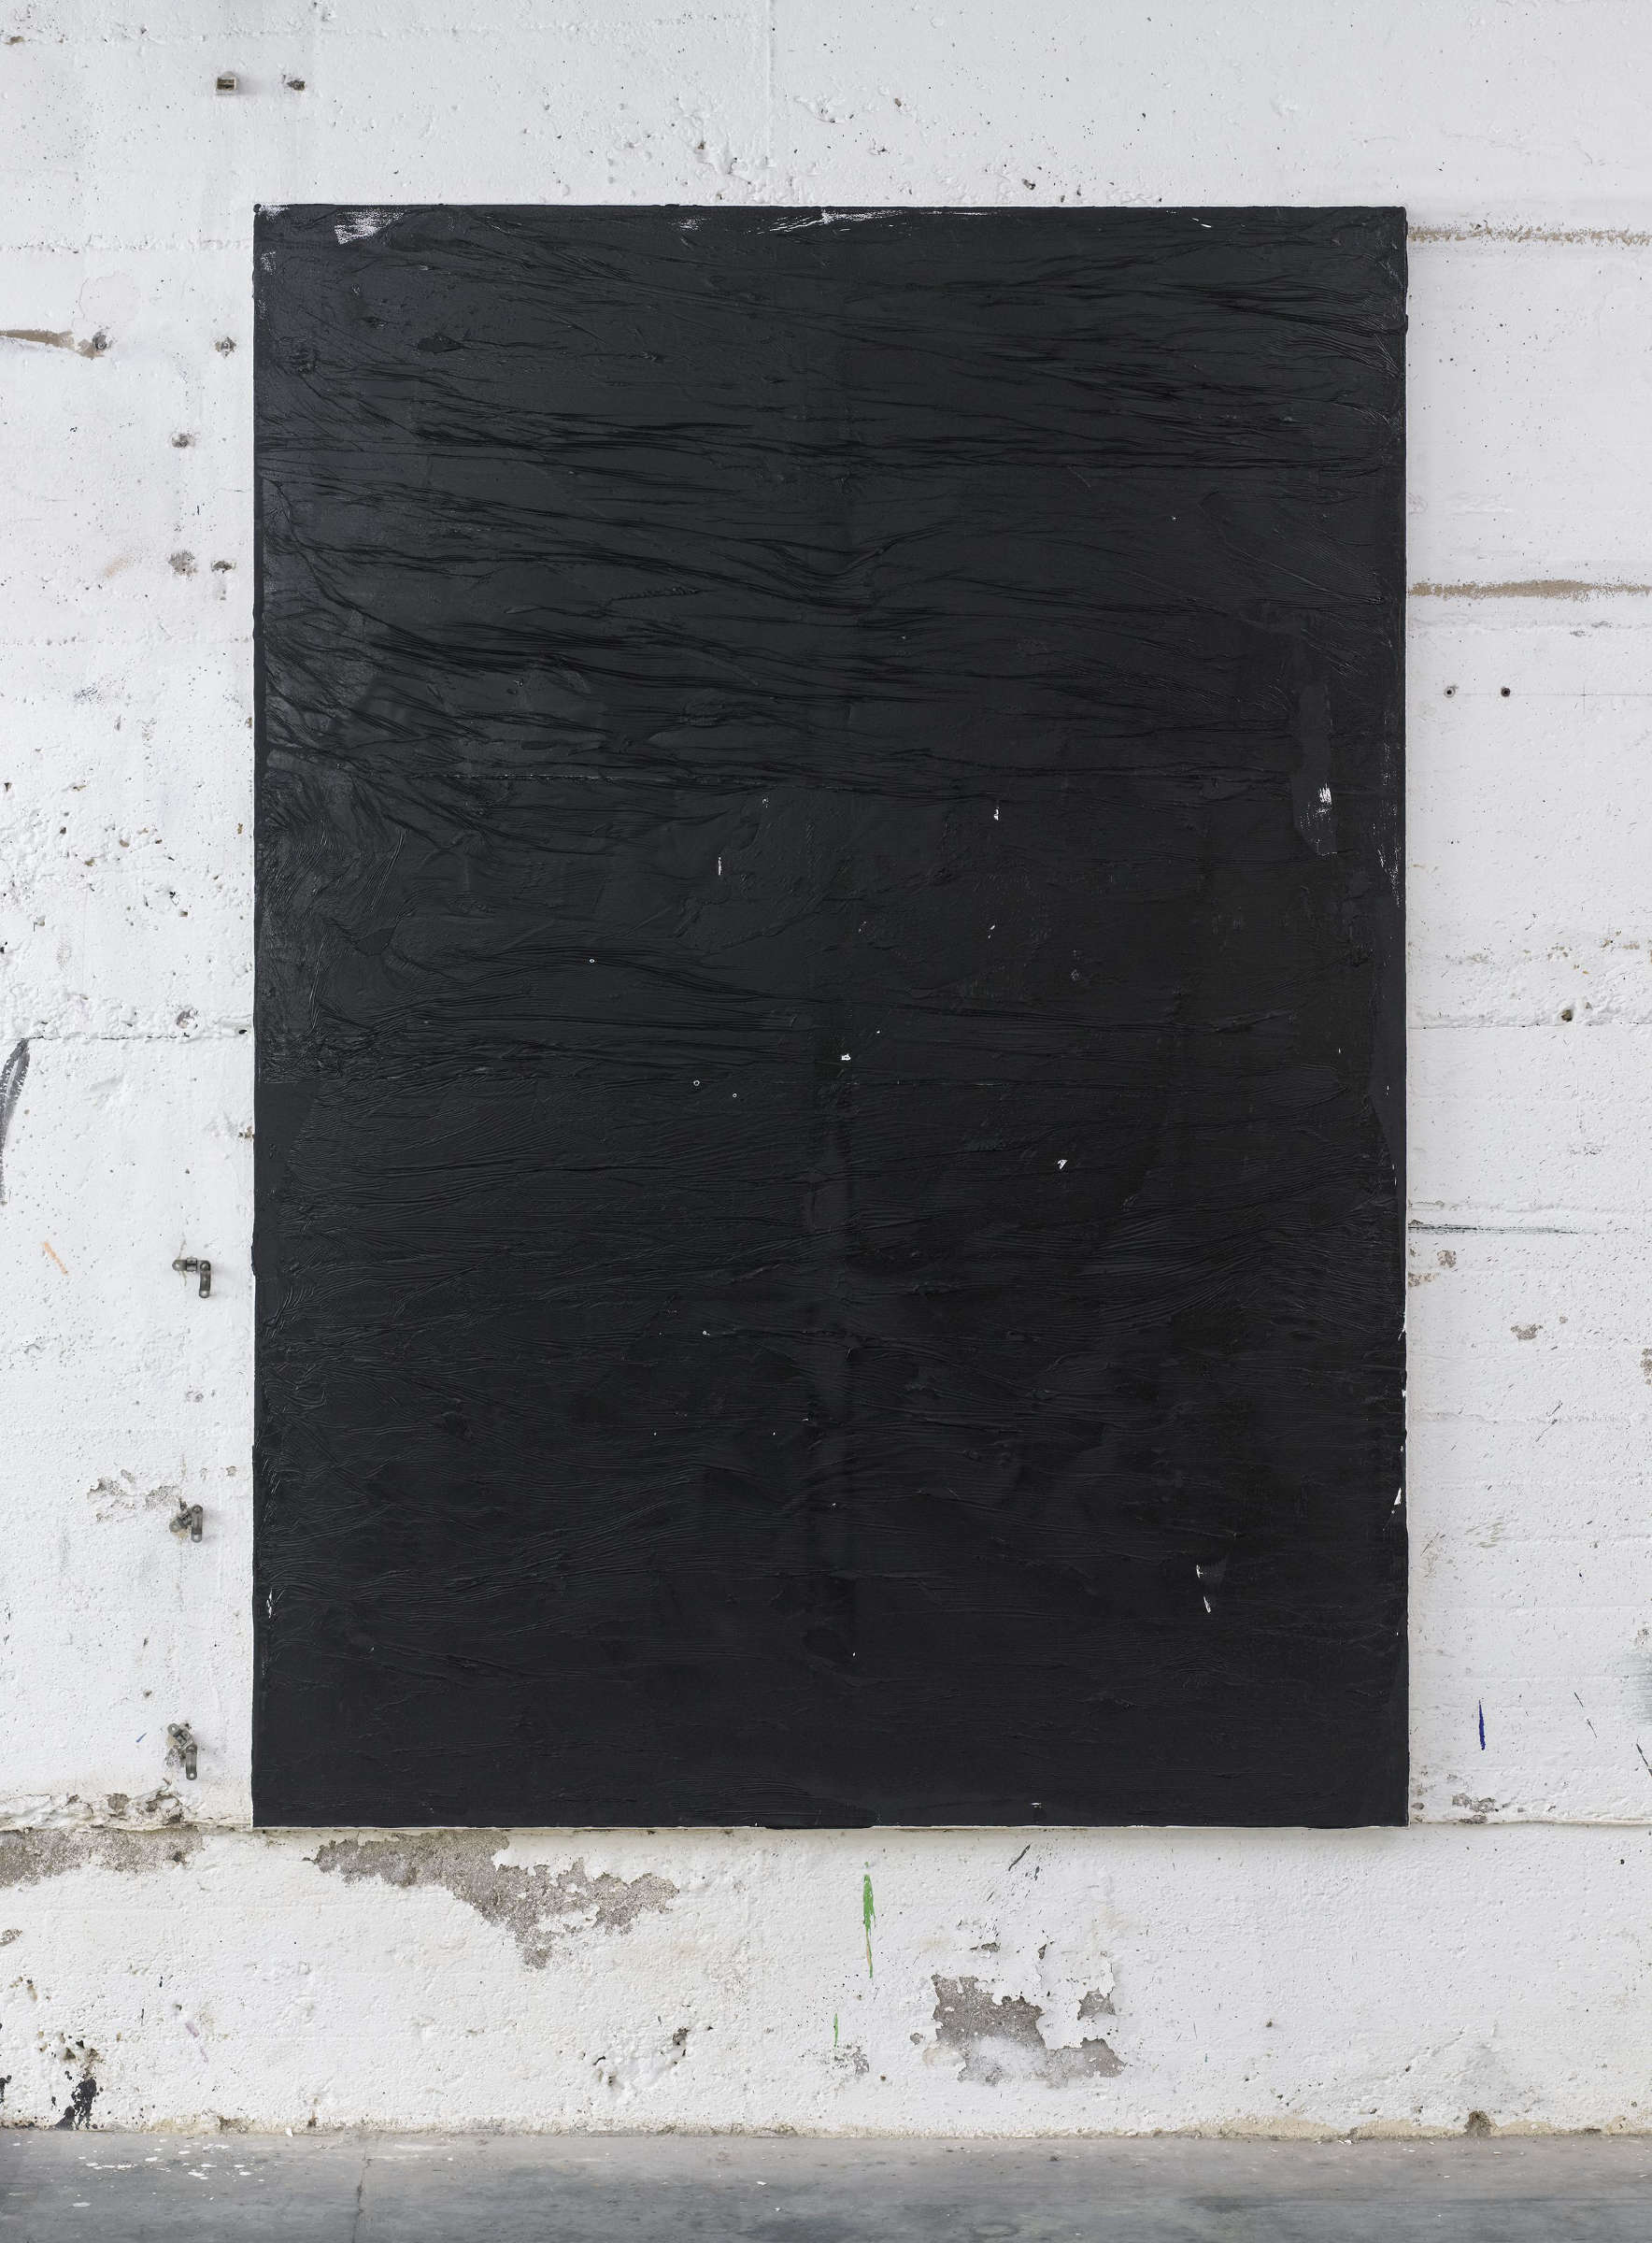 18_Tiziano Martini, 2015, untitled, black acrylic paint on primer on cotton, cm 210x150, photo Dejna Saric